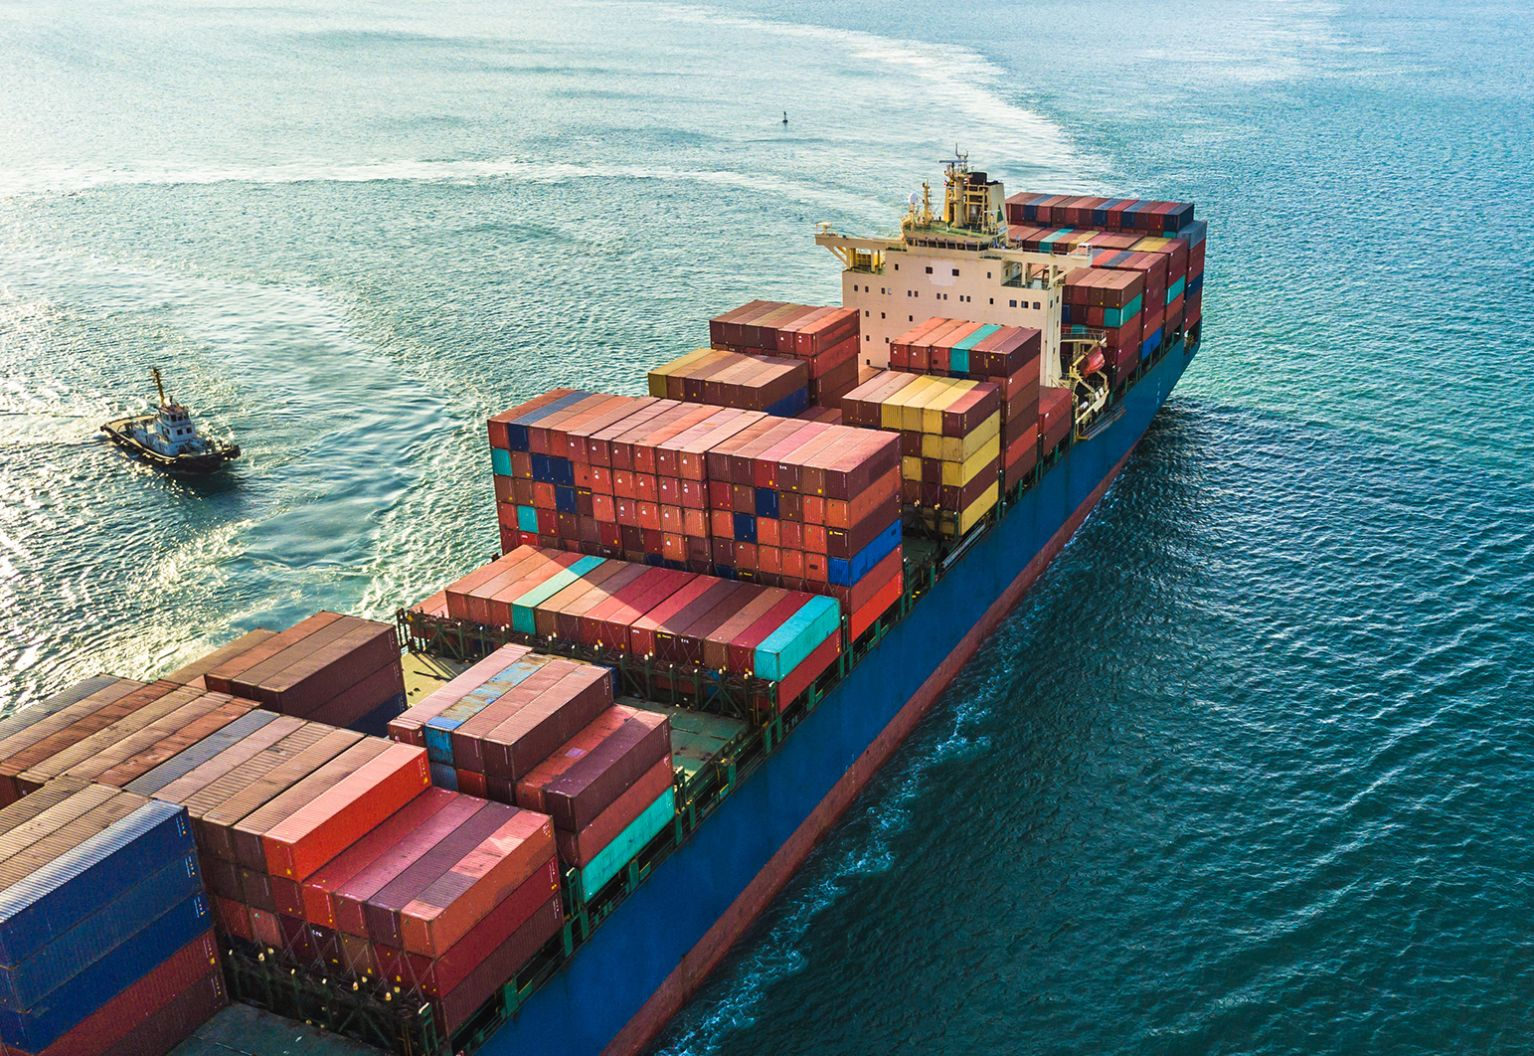 Large container ship carrying cargo with smaller ship next to it.